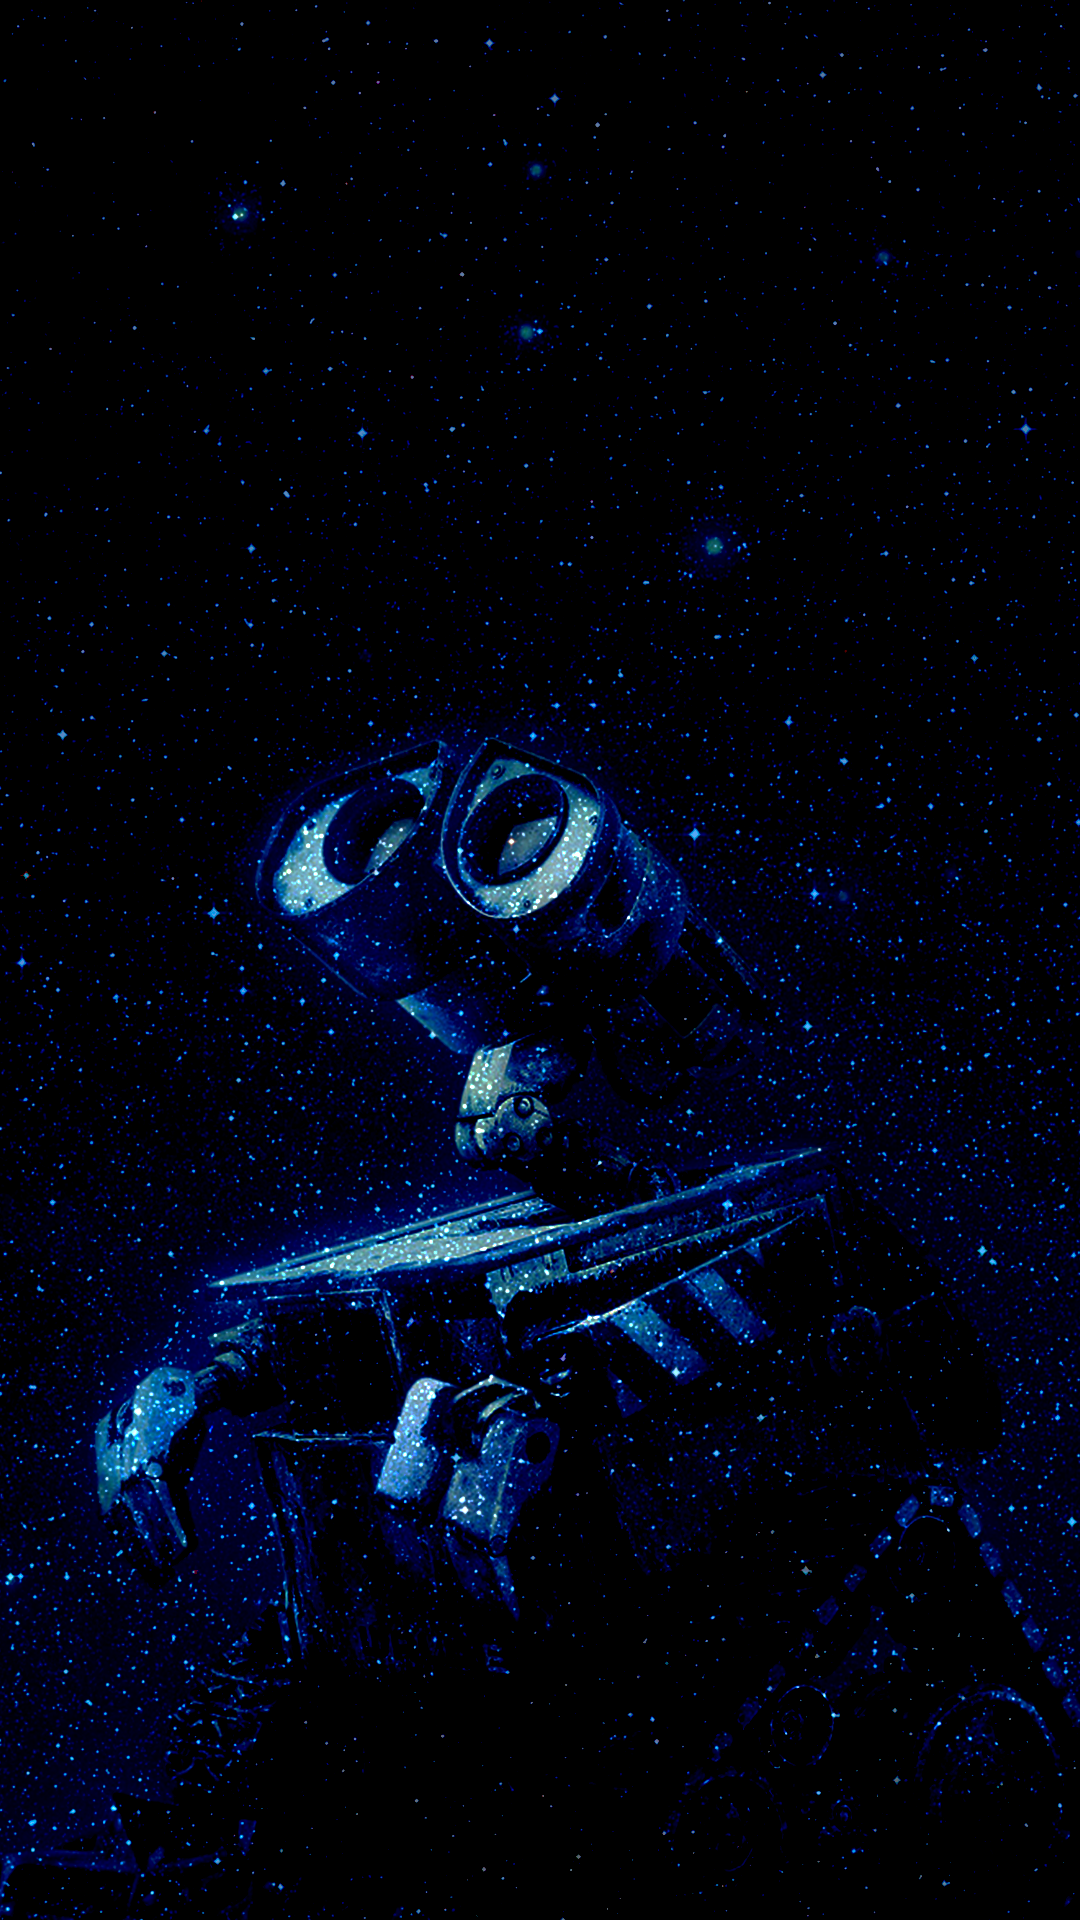 free hd wall e space iphone wallpaper for download 0272